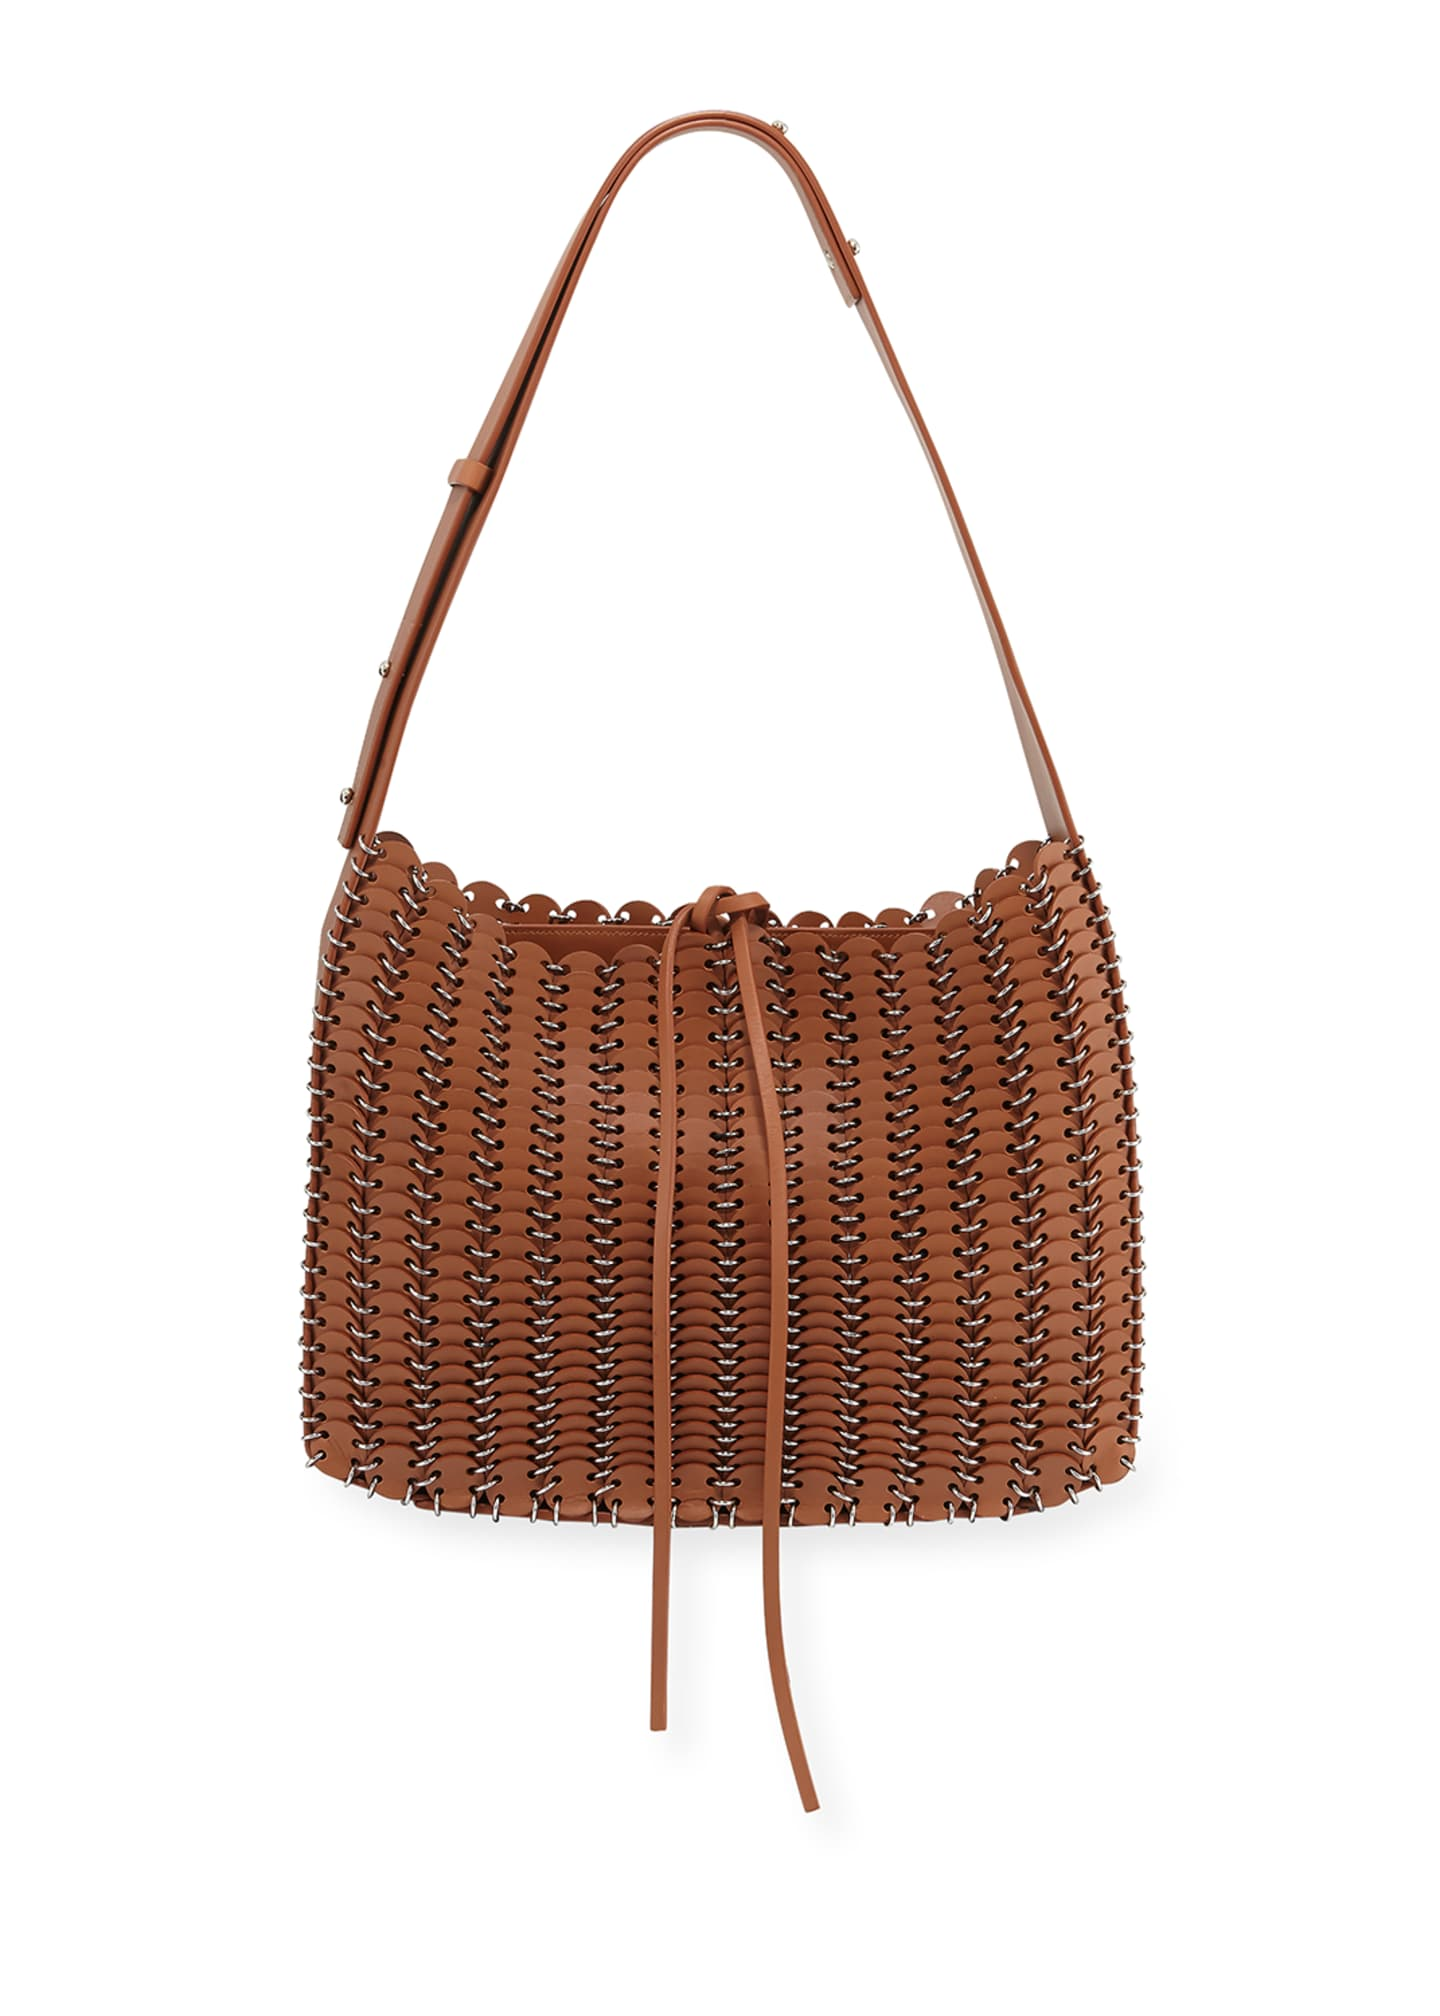 Paco Rabanne 14#01 Grommetted Leather Hobo Bag